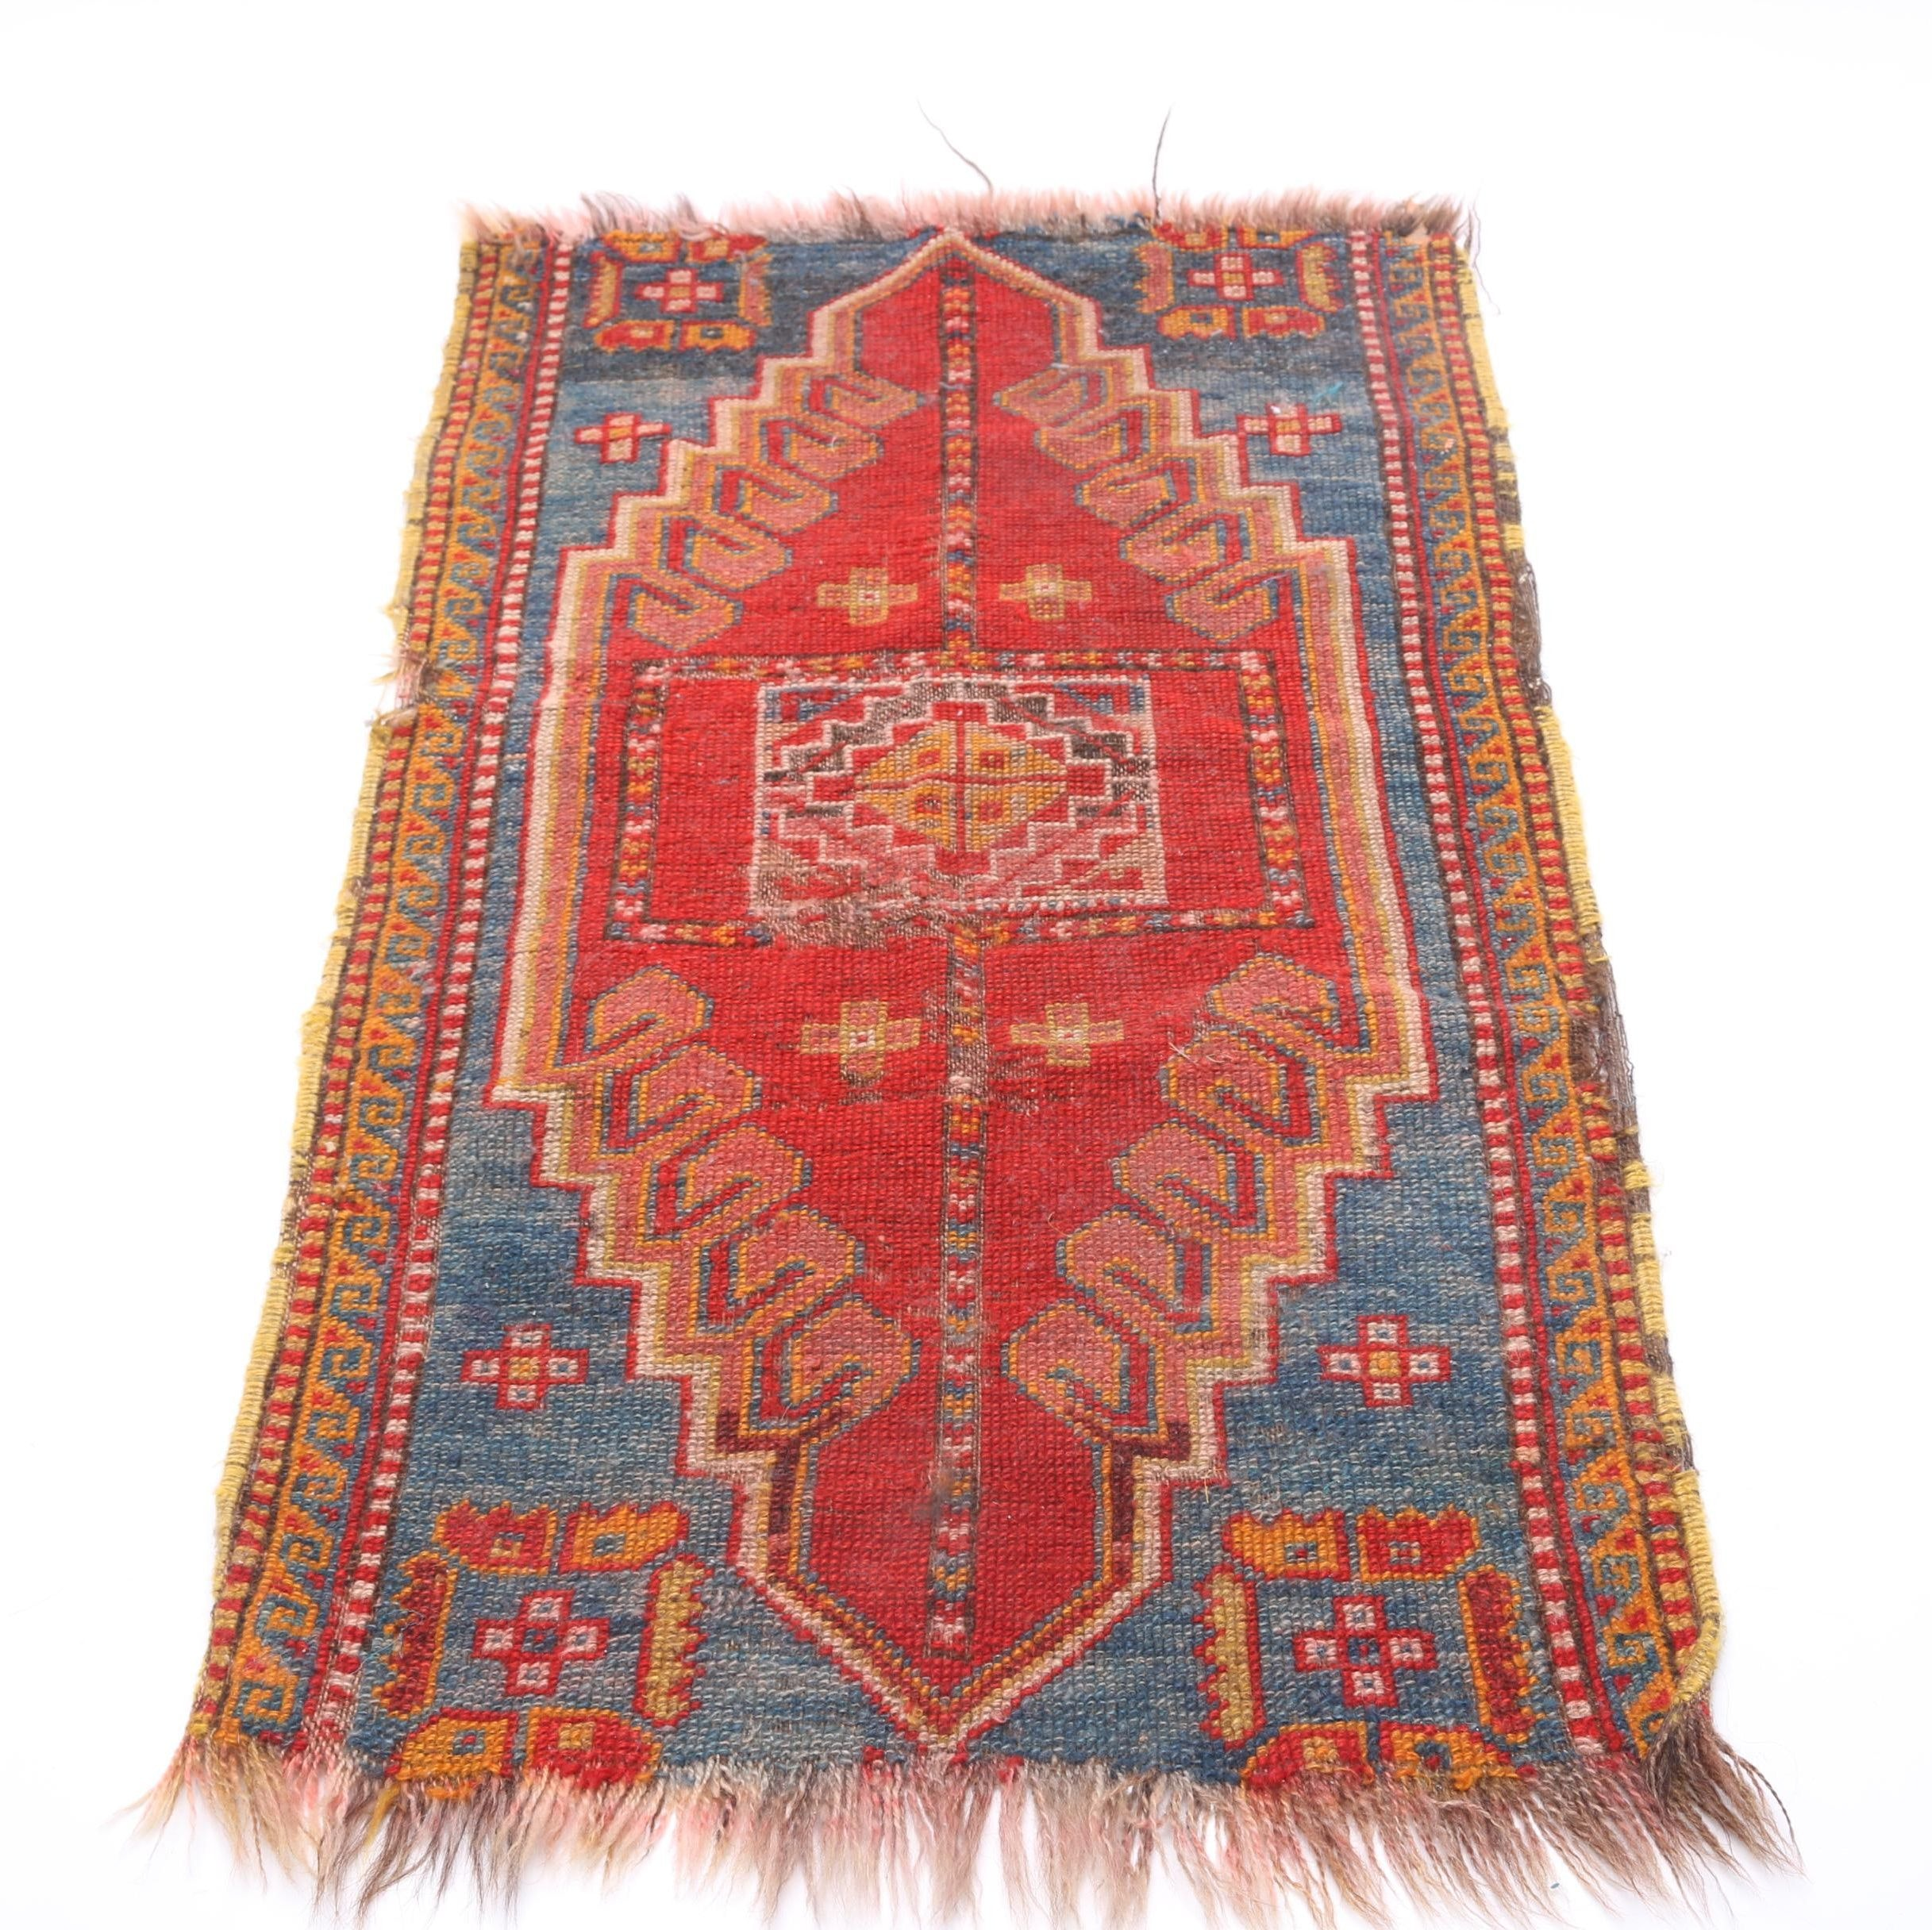 Handwoven Turkish Tribal Yastik